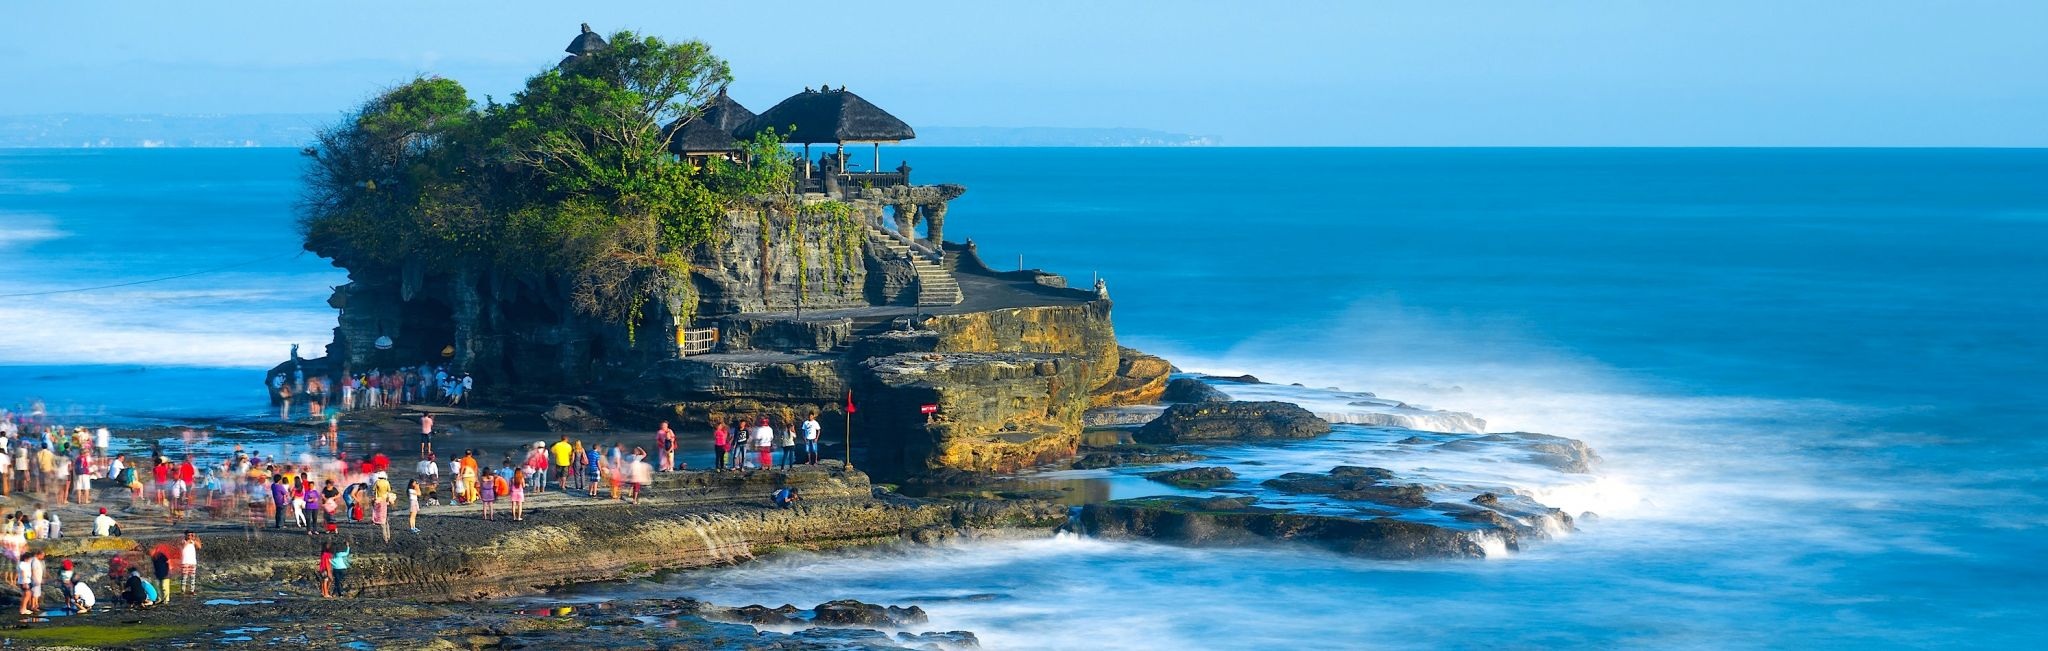 Bali Vacation Packages 2017 2018 Bali Tours Amp Vacations